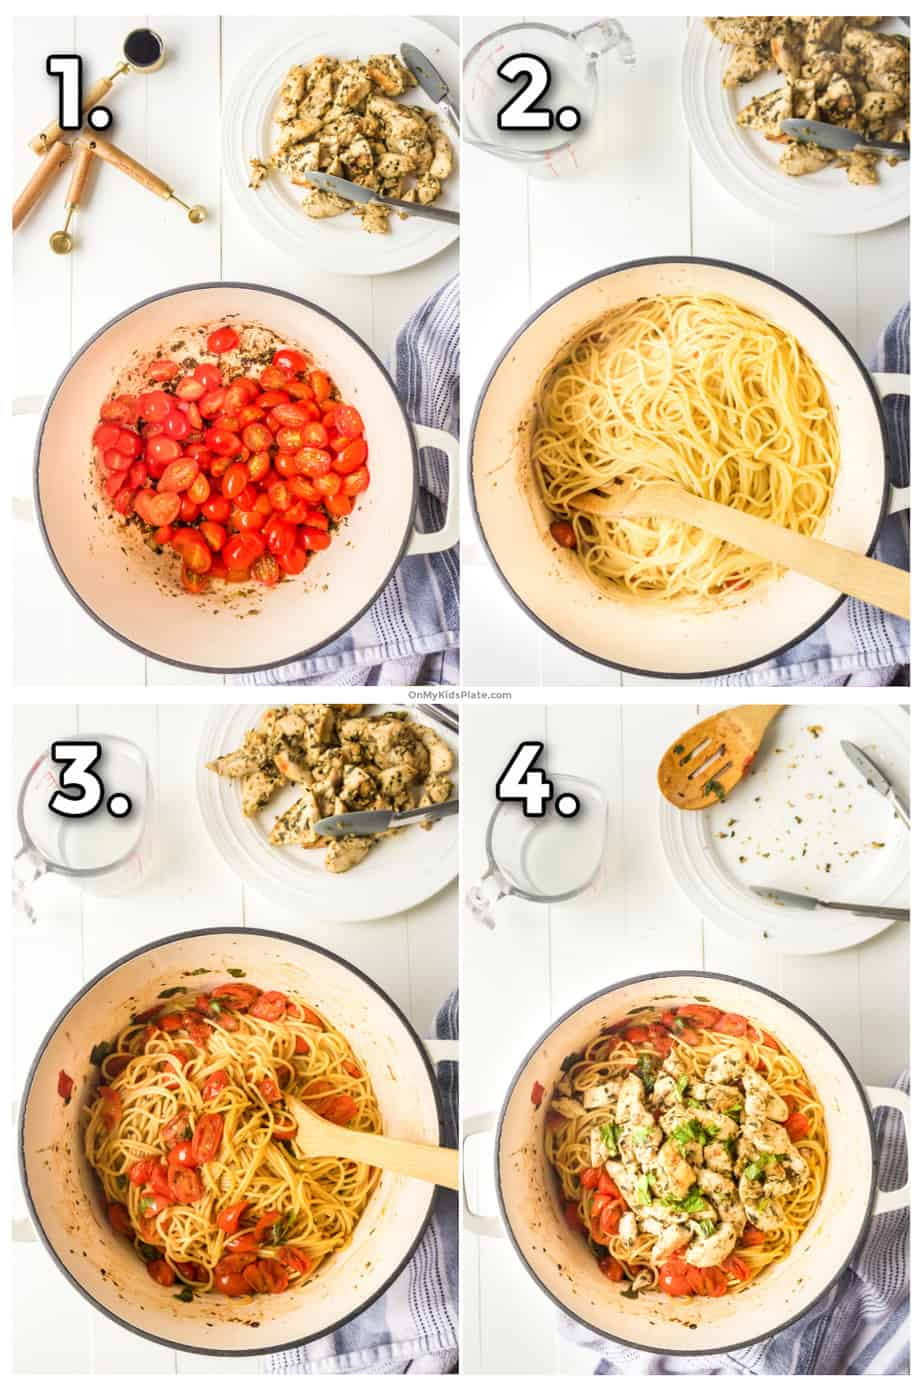 Images show cooking and mixing the tomatoes and herbs to make a sauce, spaghetti, chicken, and basil